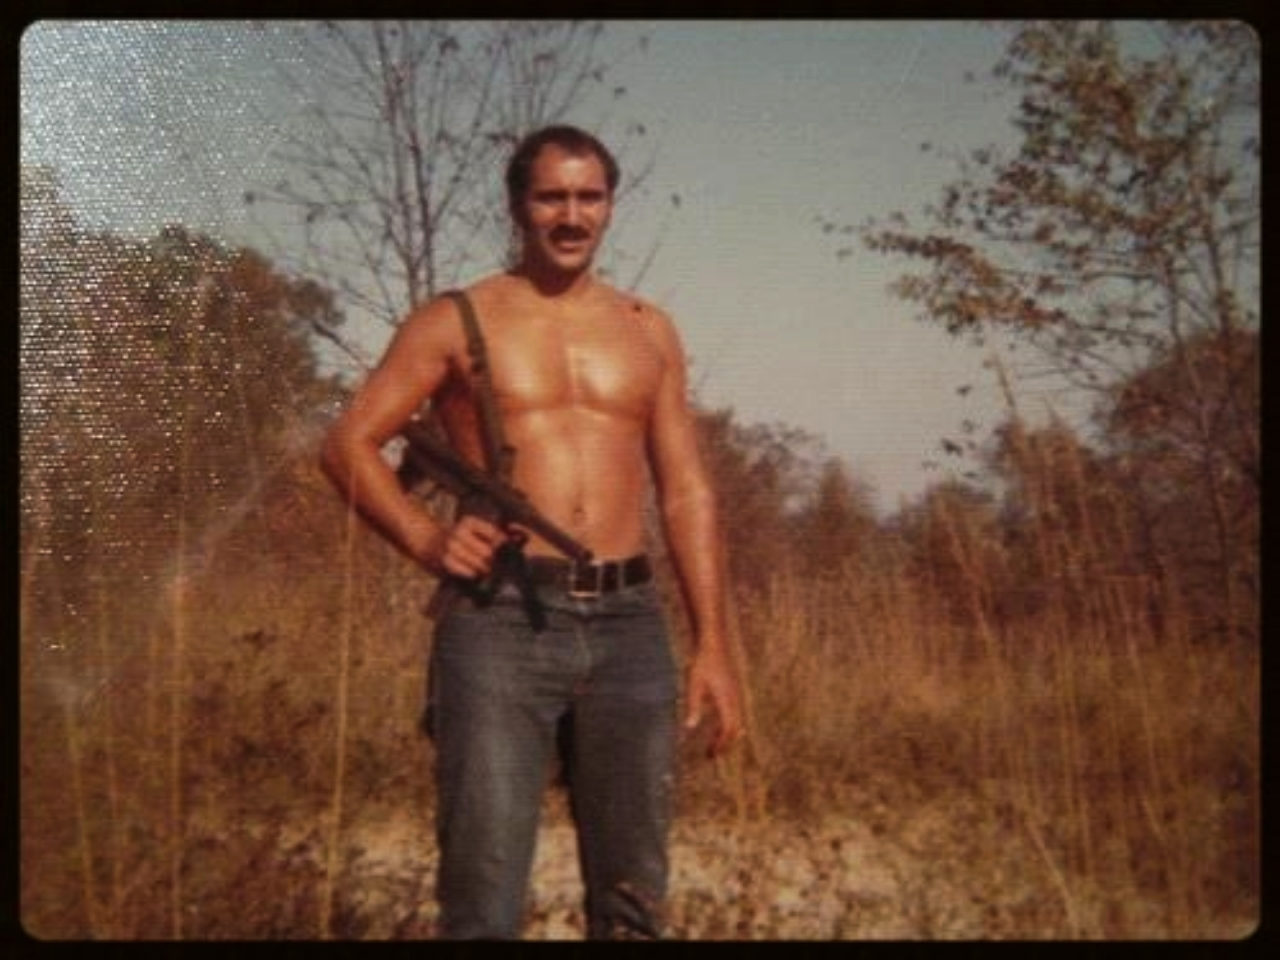 Saturday, October 26, 1974. Enjoying the sun with a 9mm S&W Model 76 submachine gun.